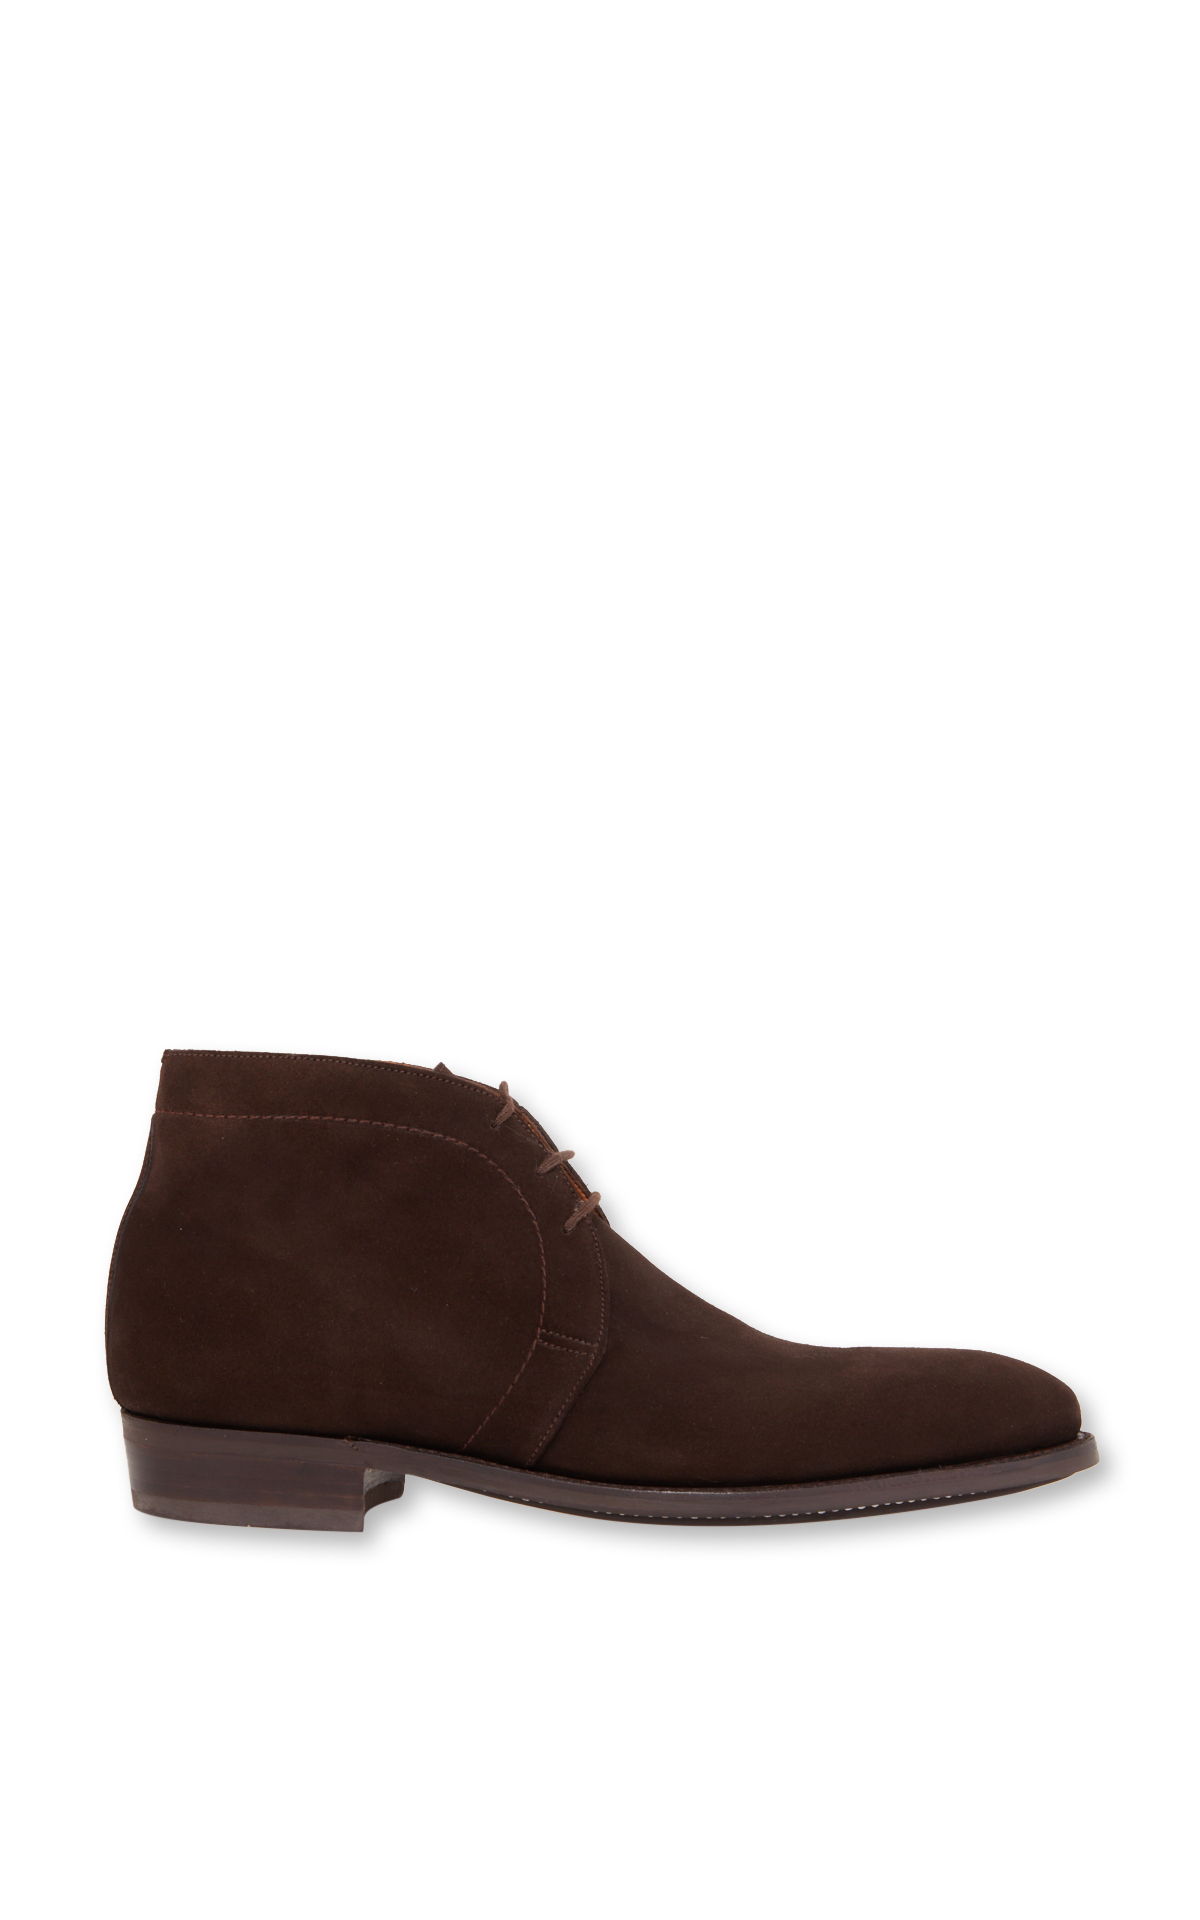 JM Weston Taupe suede shoes